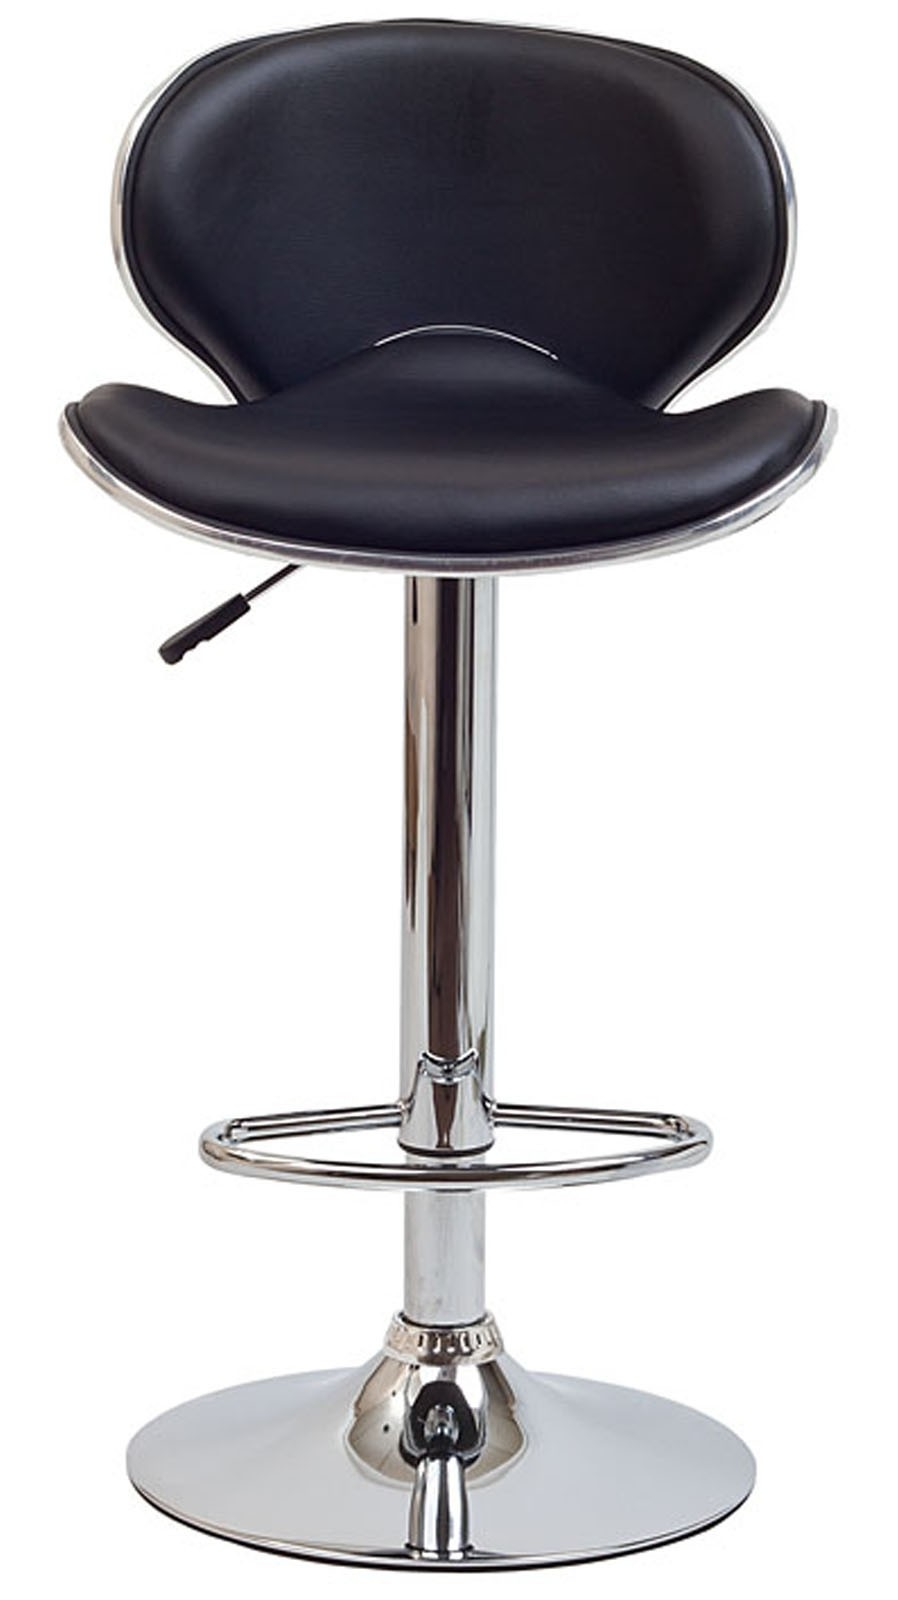 Booster Barstool in Black from Renegade EEI 580  : eei 580 blk2 from colemanfurniture.com size 898 x 1600 jpeg 94kB